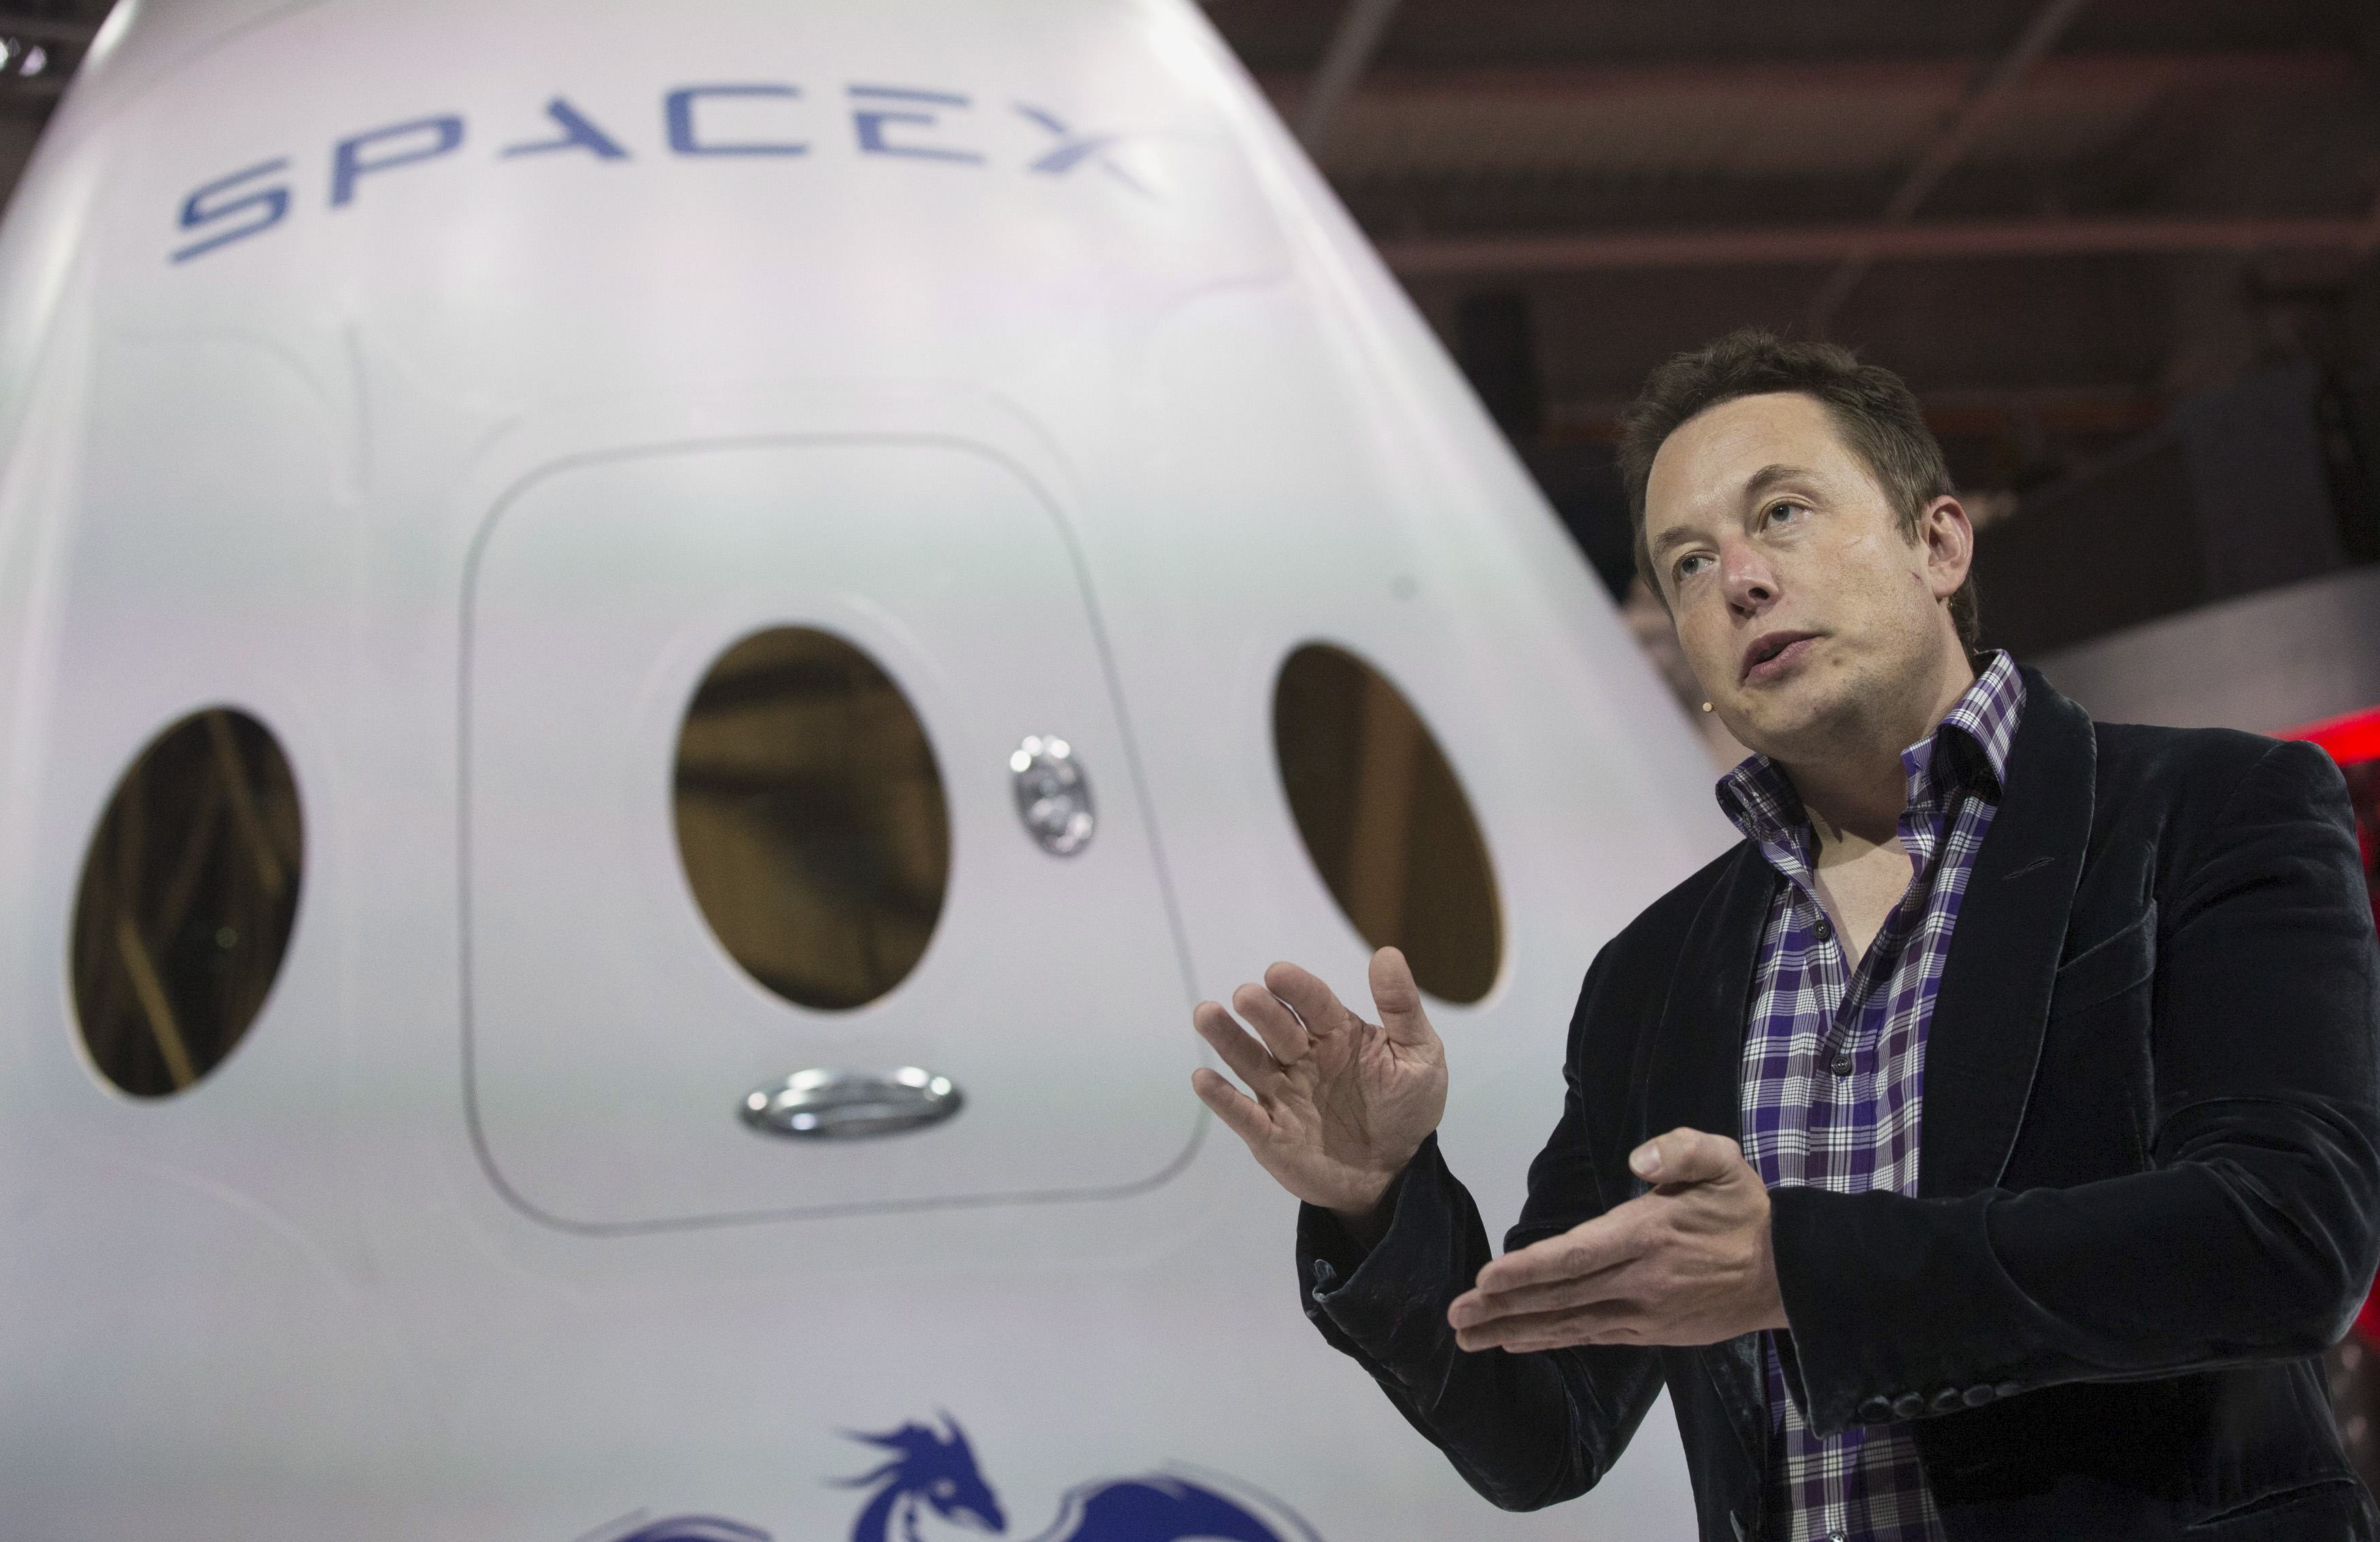 SpaceX CEO Elon Musk speaks after unveiling the Dragon V2 spacecraft in Hawthorne, California May 29, 2014. Space Exploration Technologies announced April 27, 2016, it will send uncrewed Dragon spacecraft to Mars as early as 2018, a first step in company founder Elon Musk's goal to fly people to another planet. REUTERS/Mario Anzuoni/File Photo      TPX IMAGES OF THE DAY      - RTX2BYNX